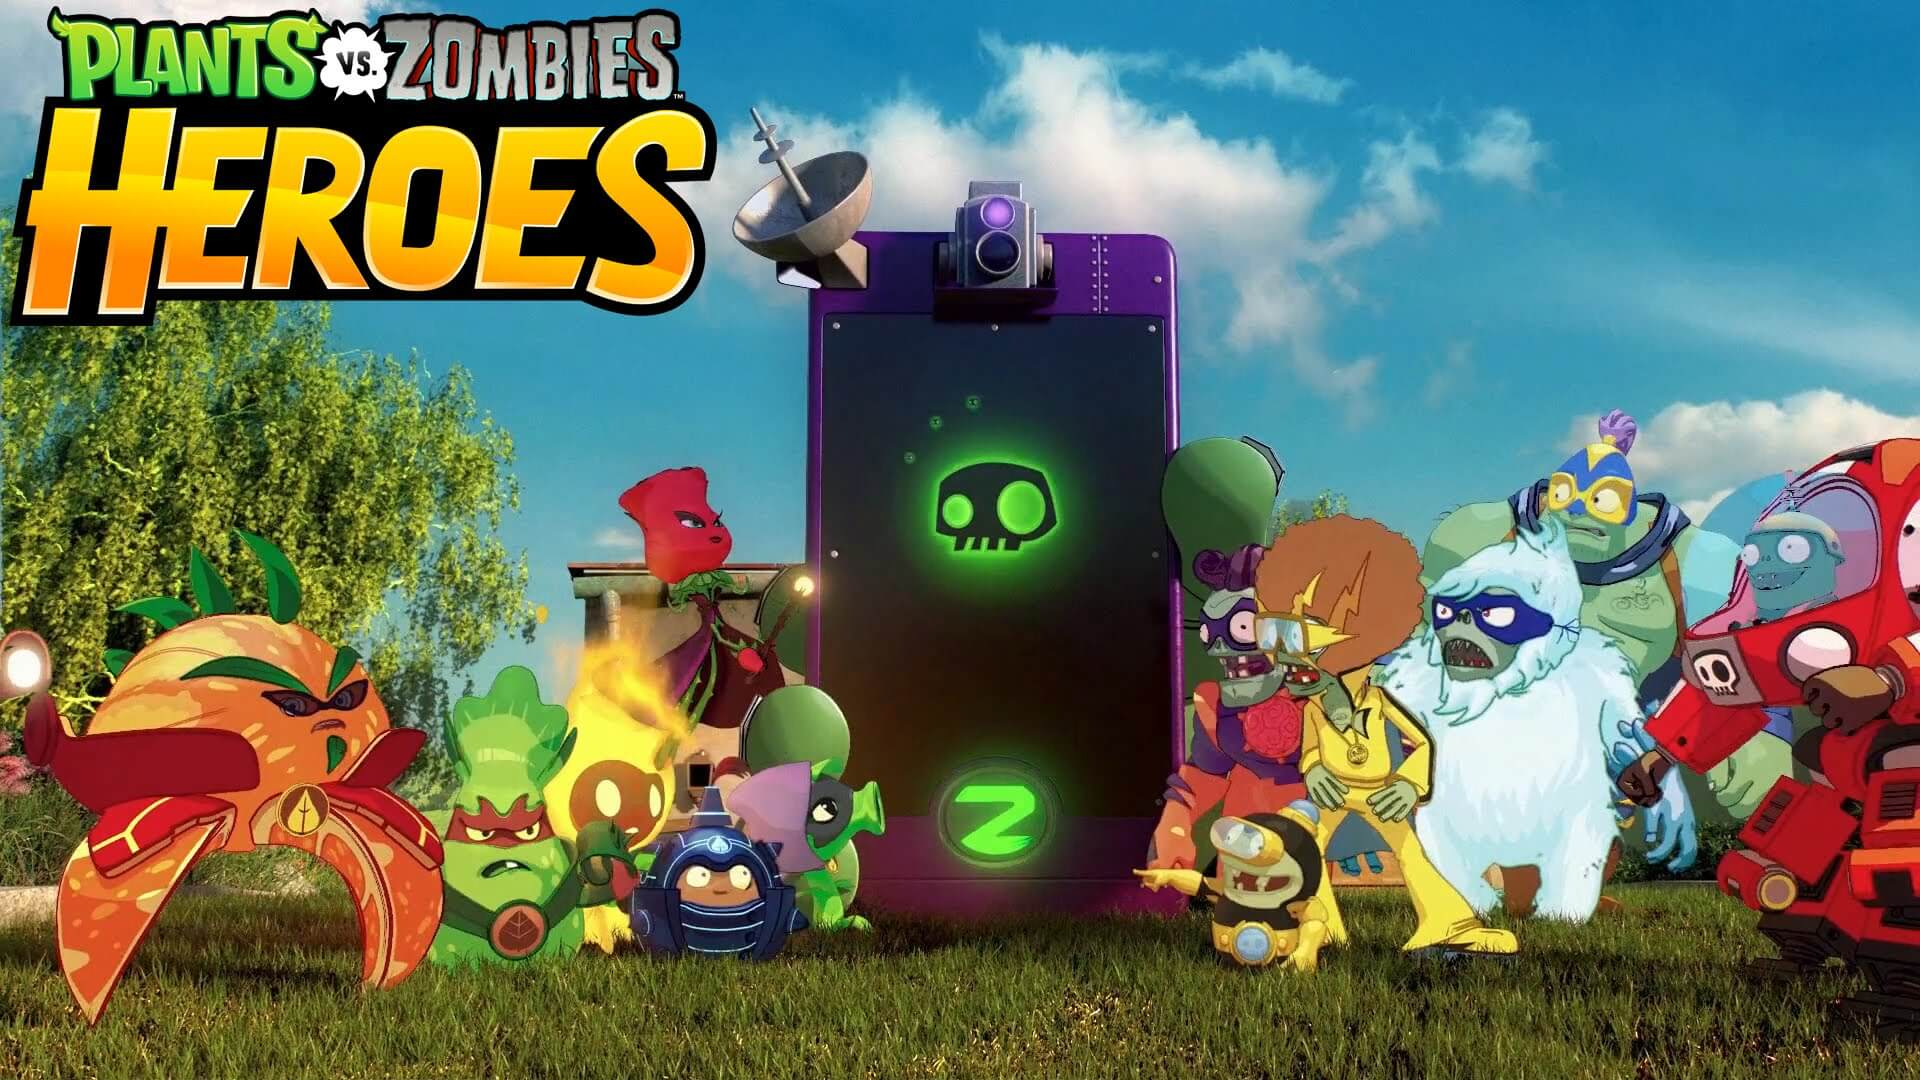 plants vs zombies heroes - Plants vs Zombies Heroes chegou para dispositivos iOS e Android